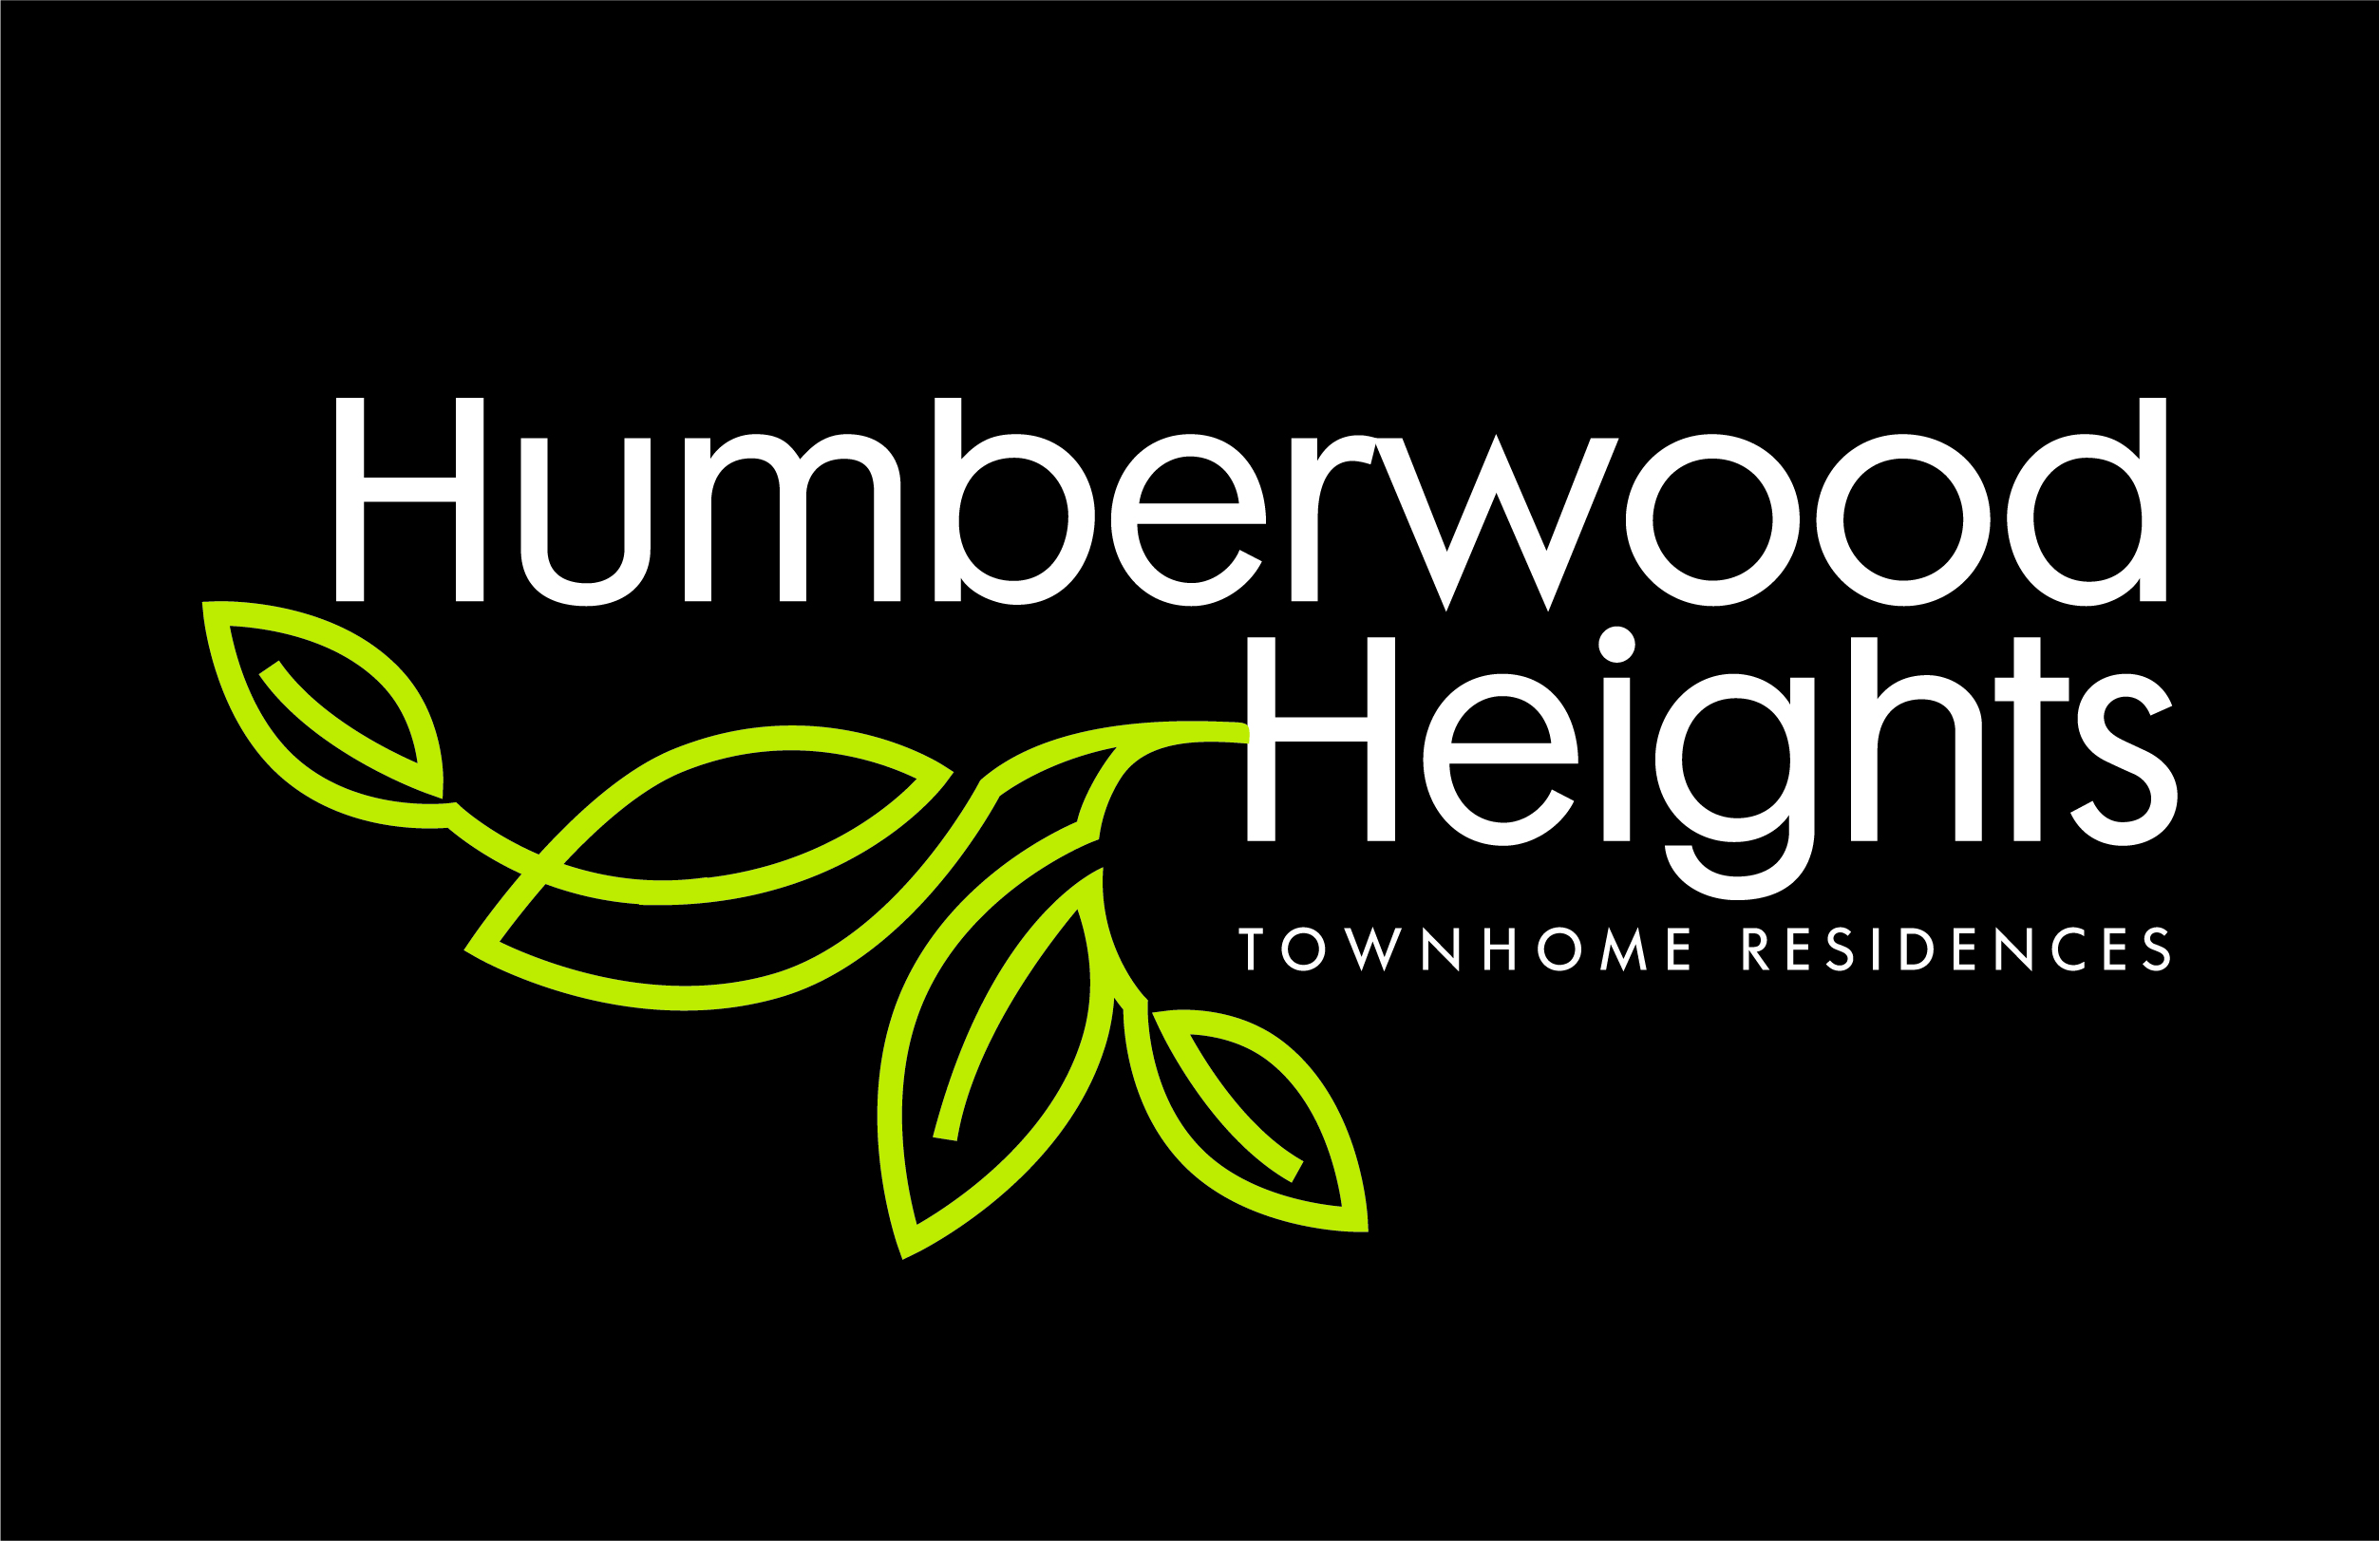 Humberwood Heights Townhome Residences - North Etobicoke